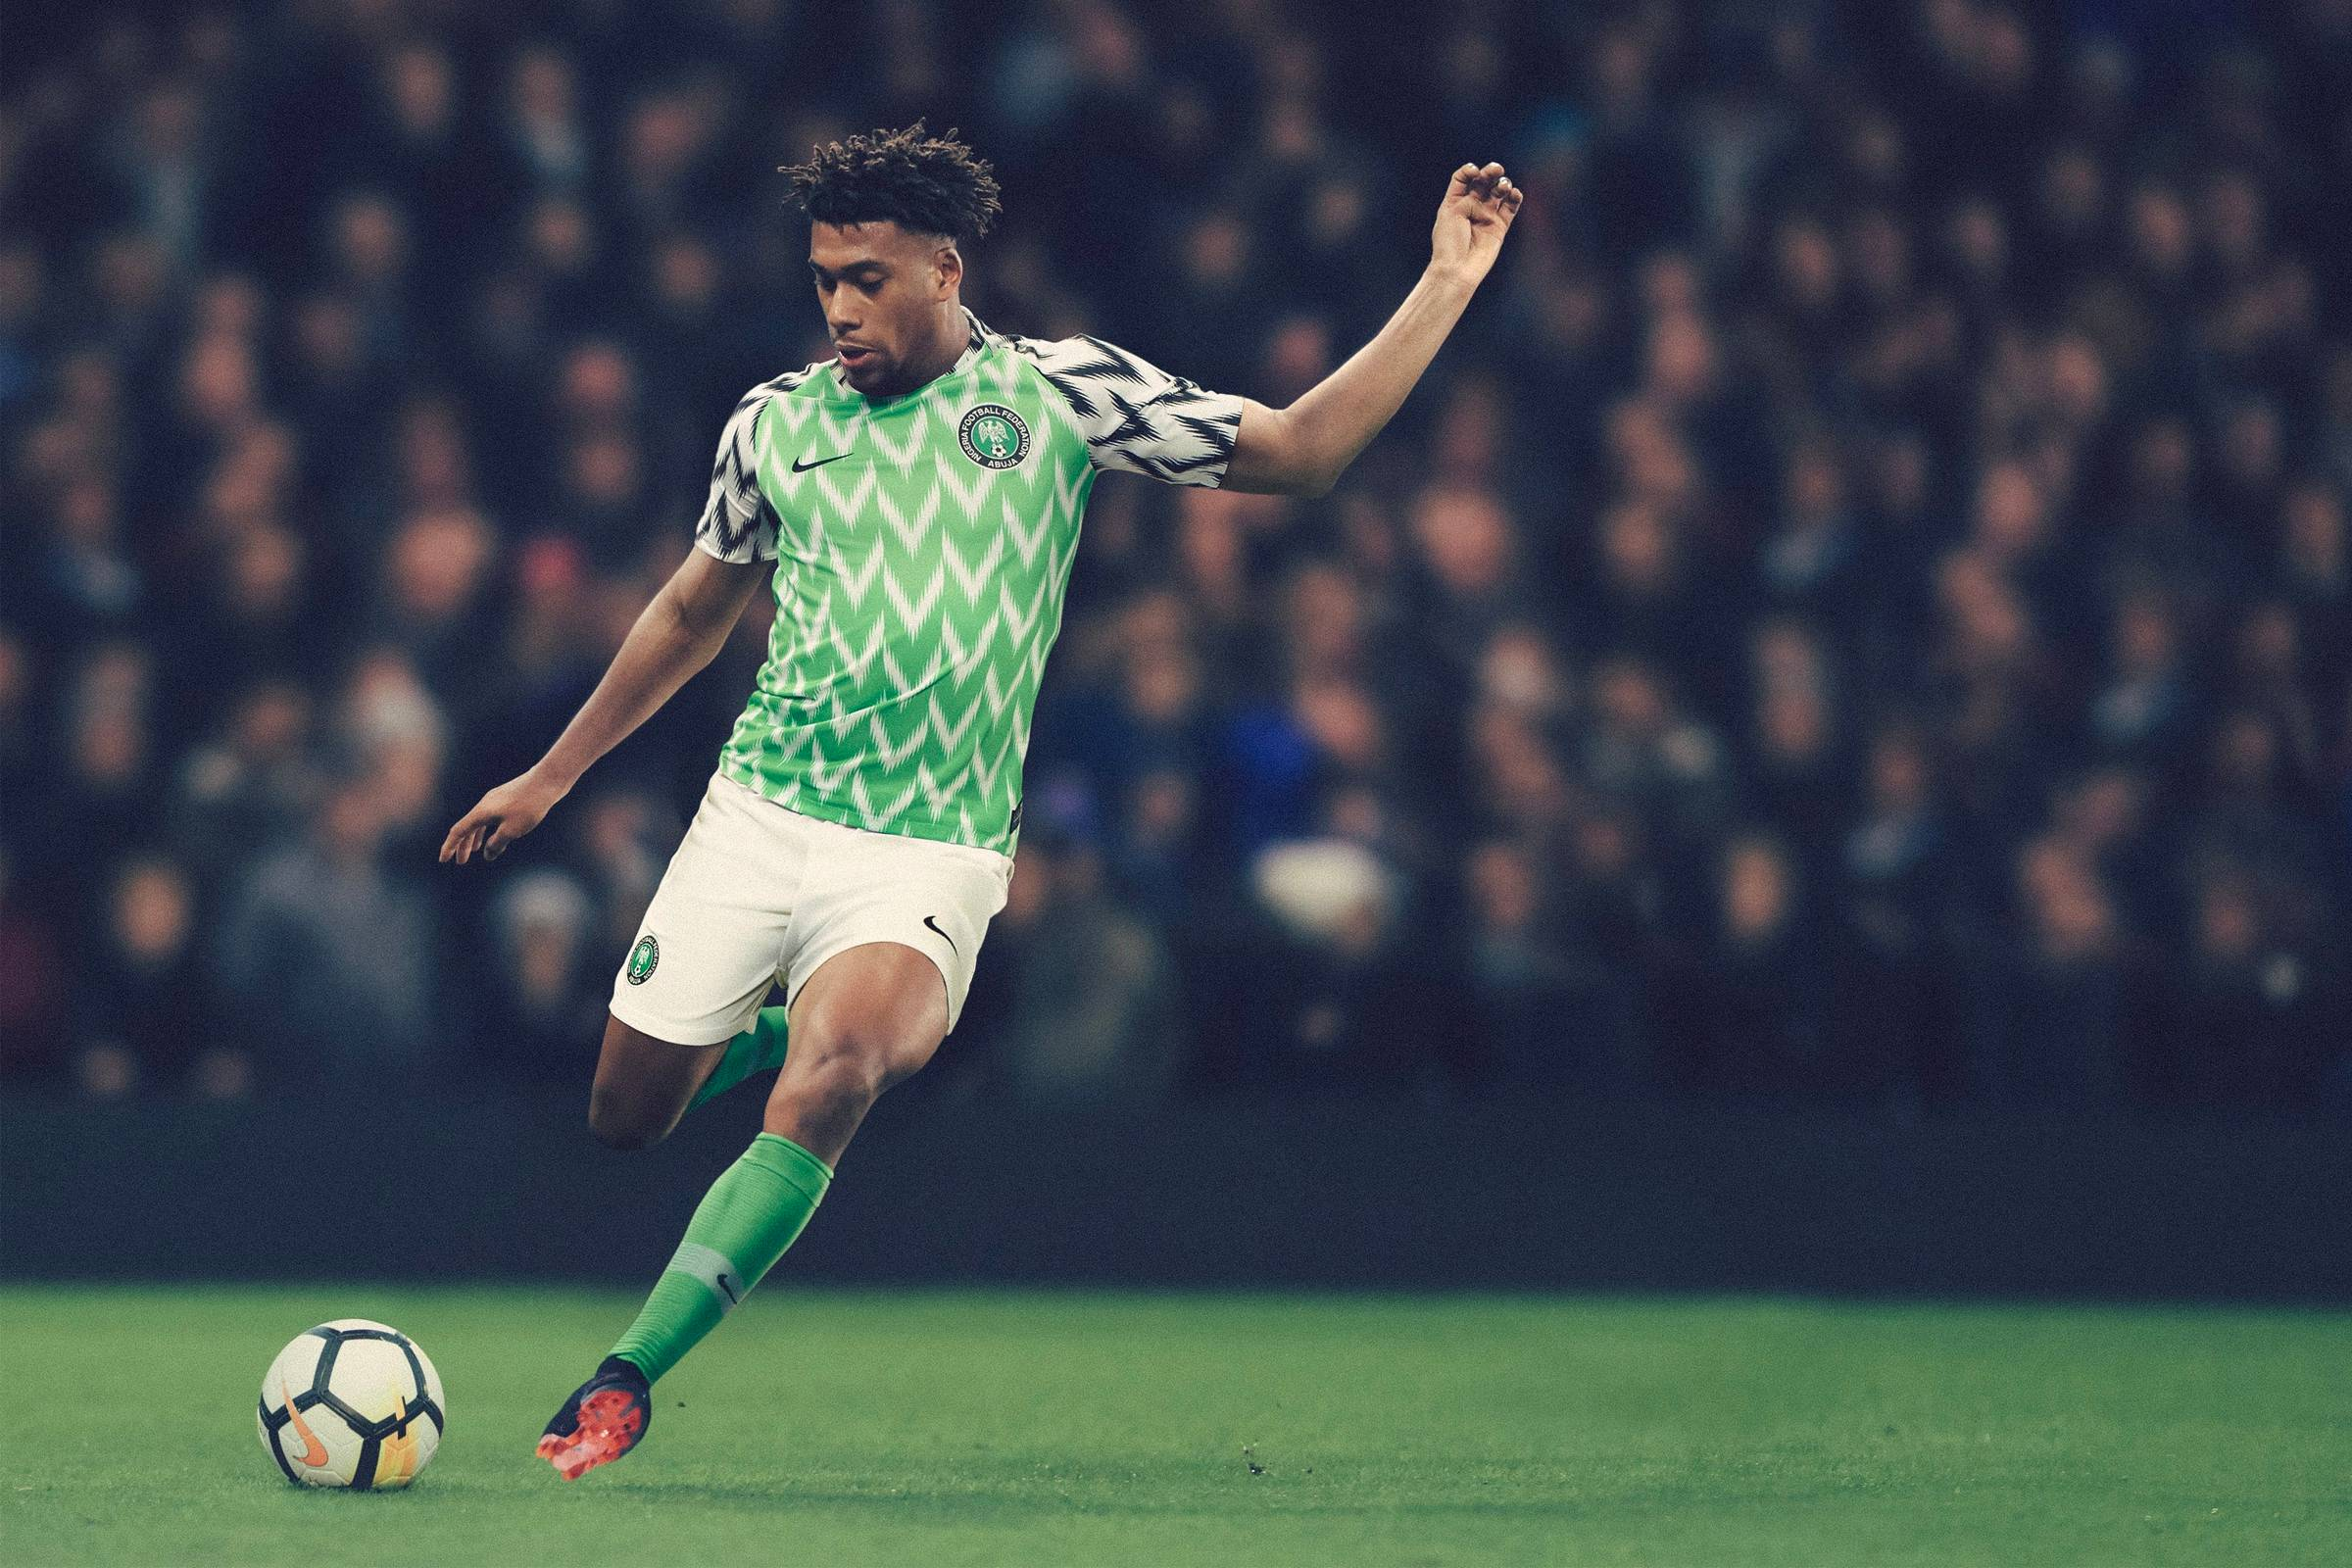 0b08182885e ... kit that has sparked renewed interest and debate about the greatest  kits of all time  Nigeria s Nike-designed home kit for the 2018 World Cup.